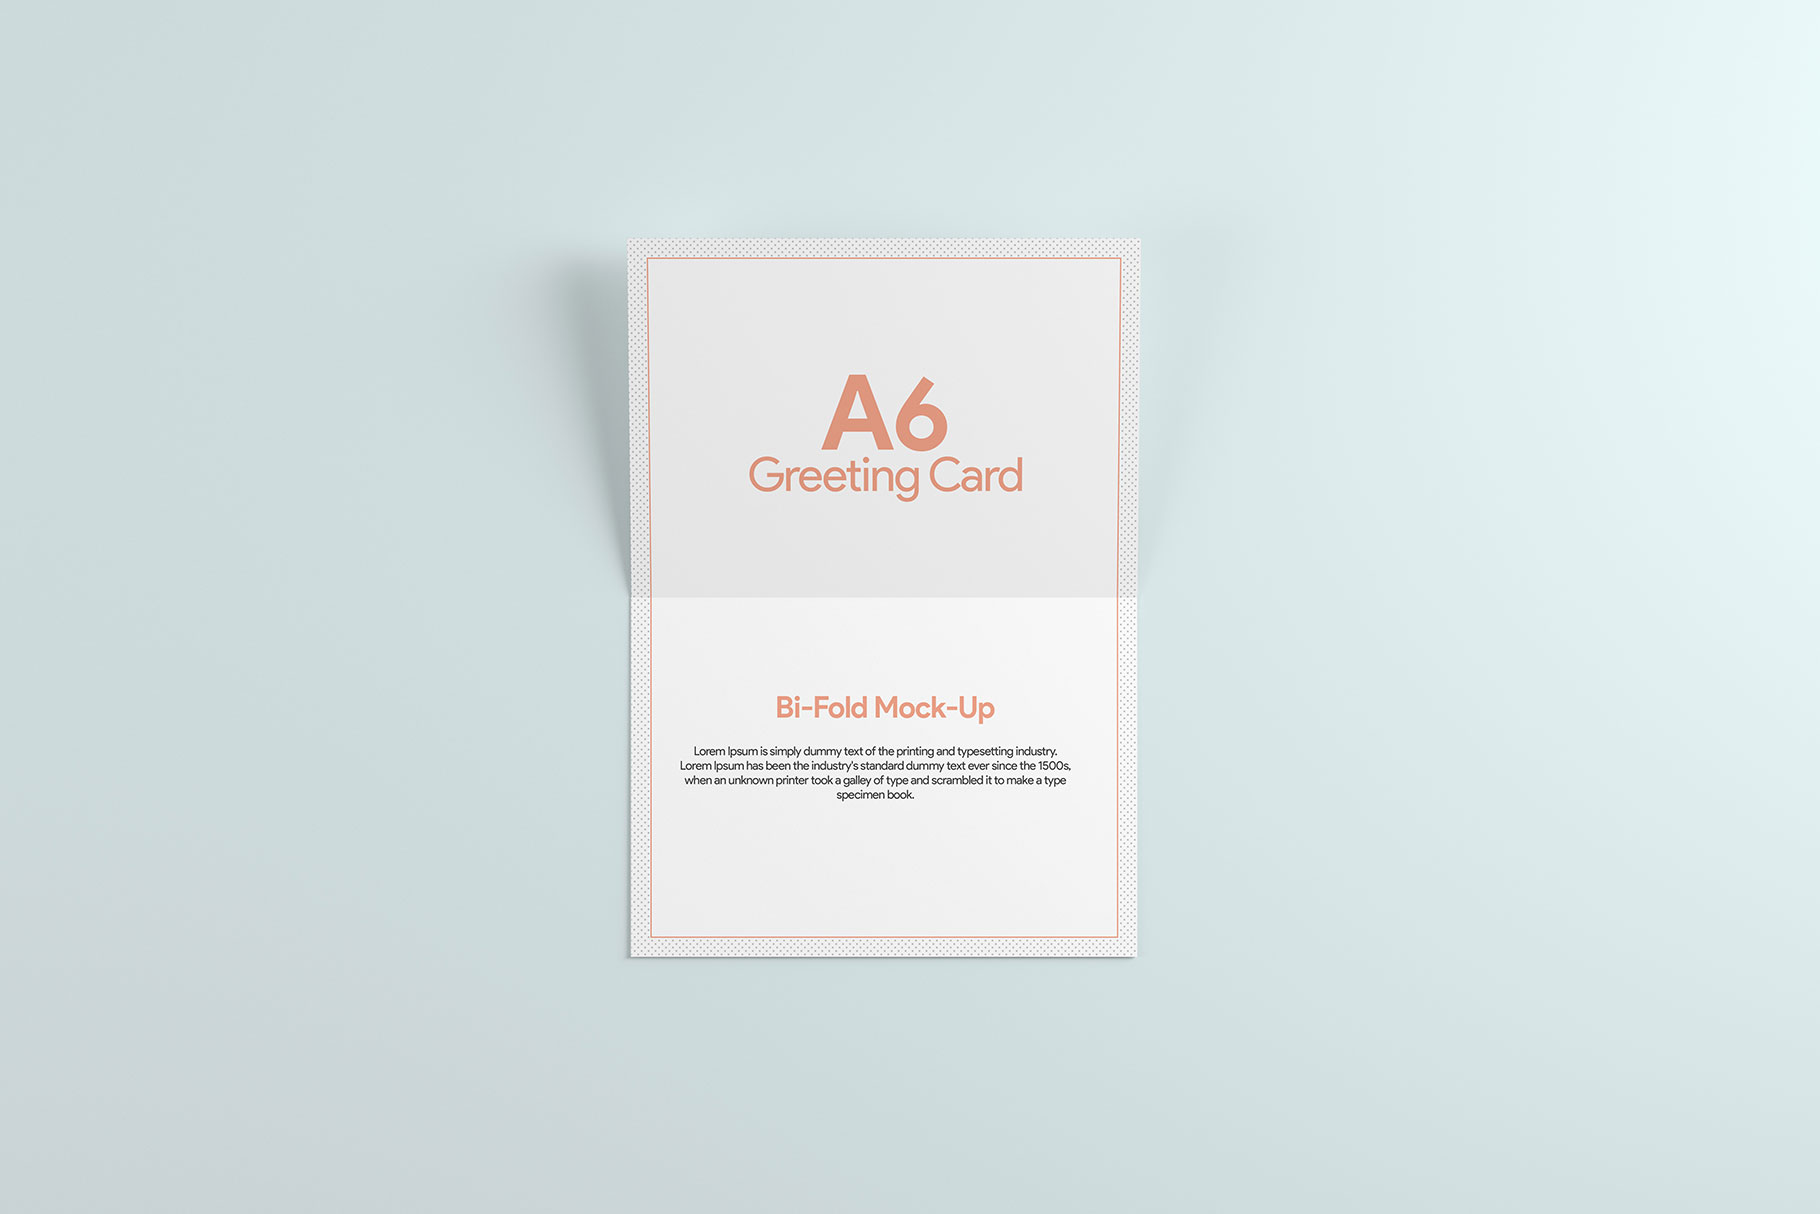 A6 Greeting Card Invitation X2 example image 9